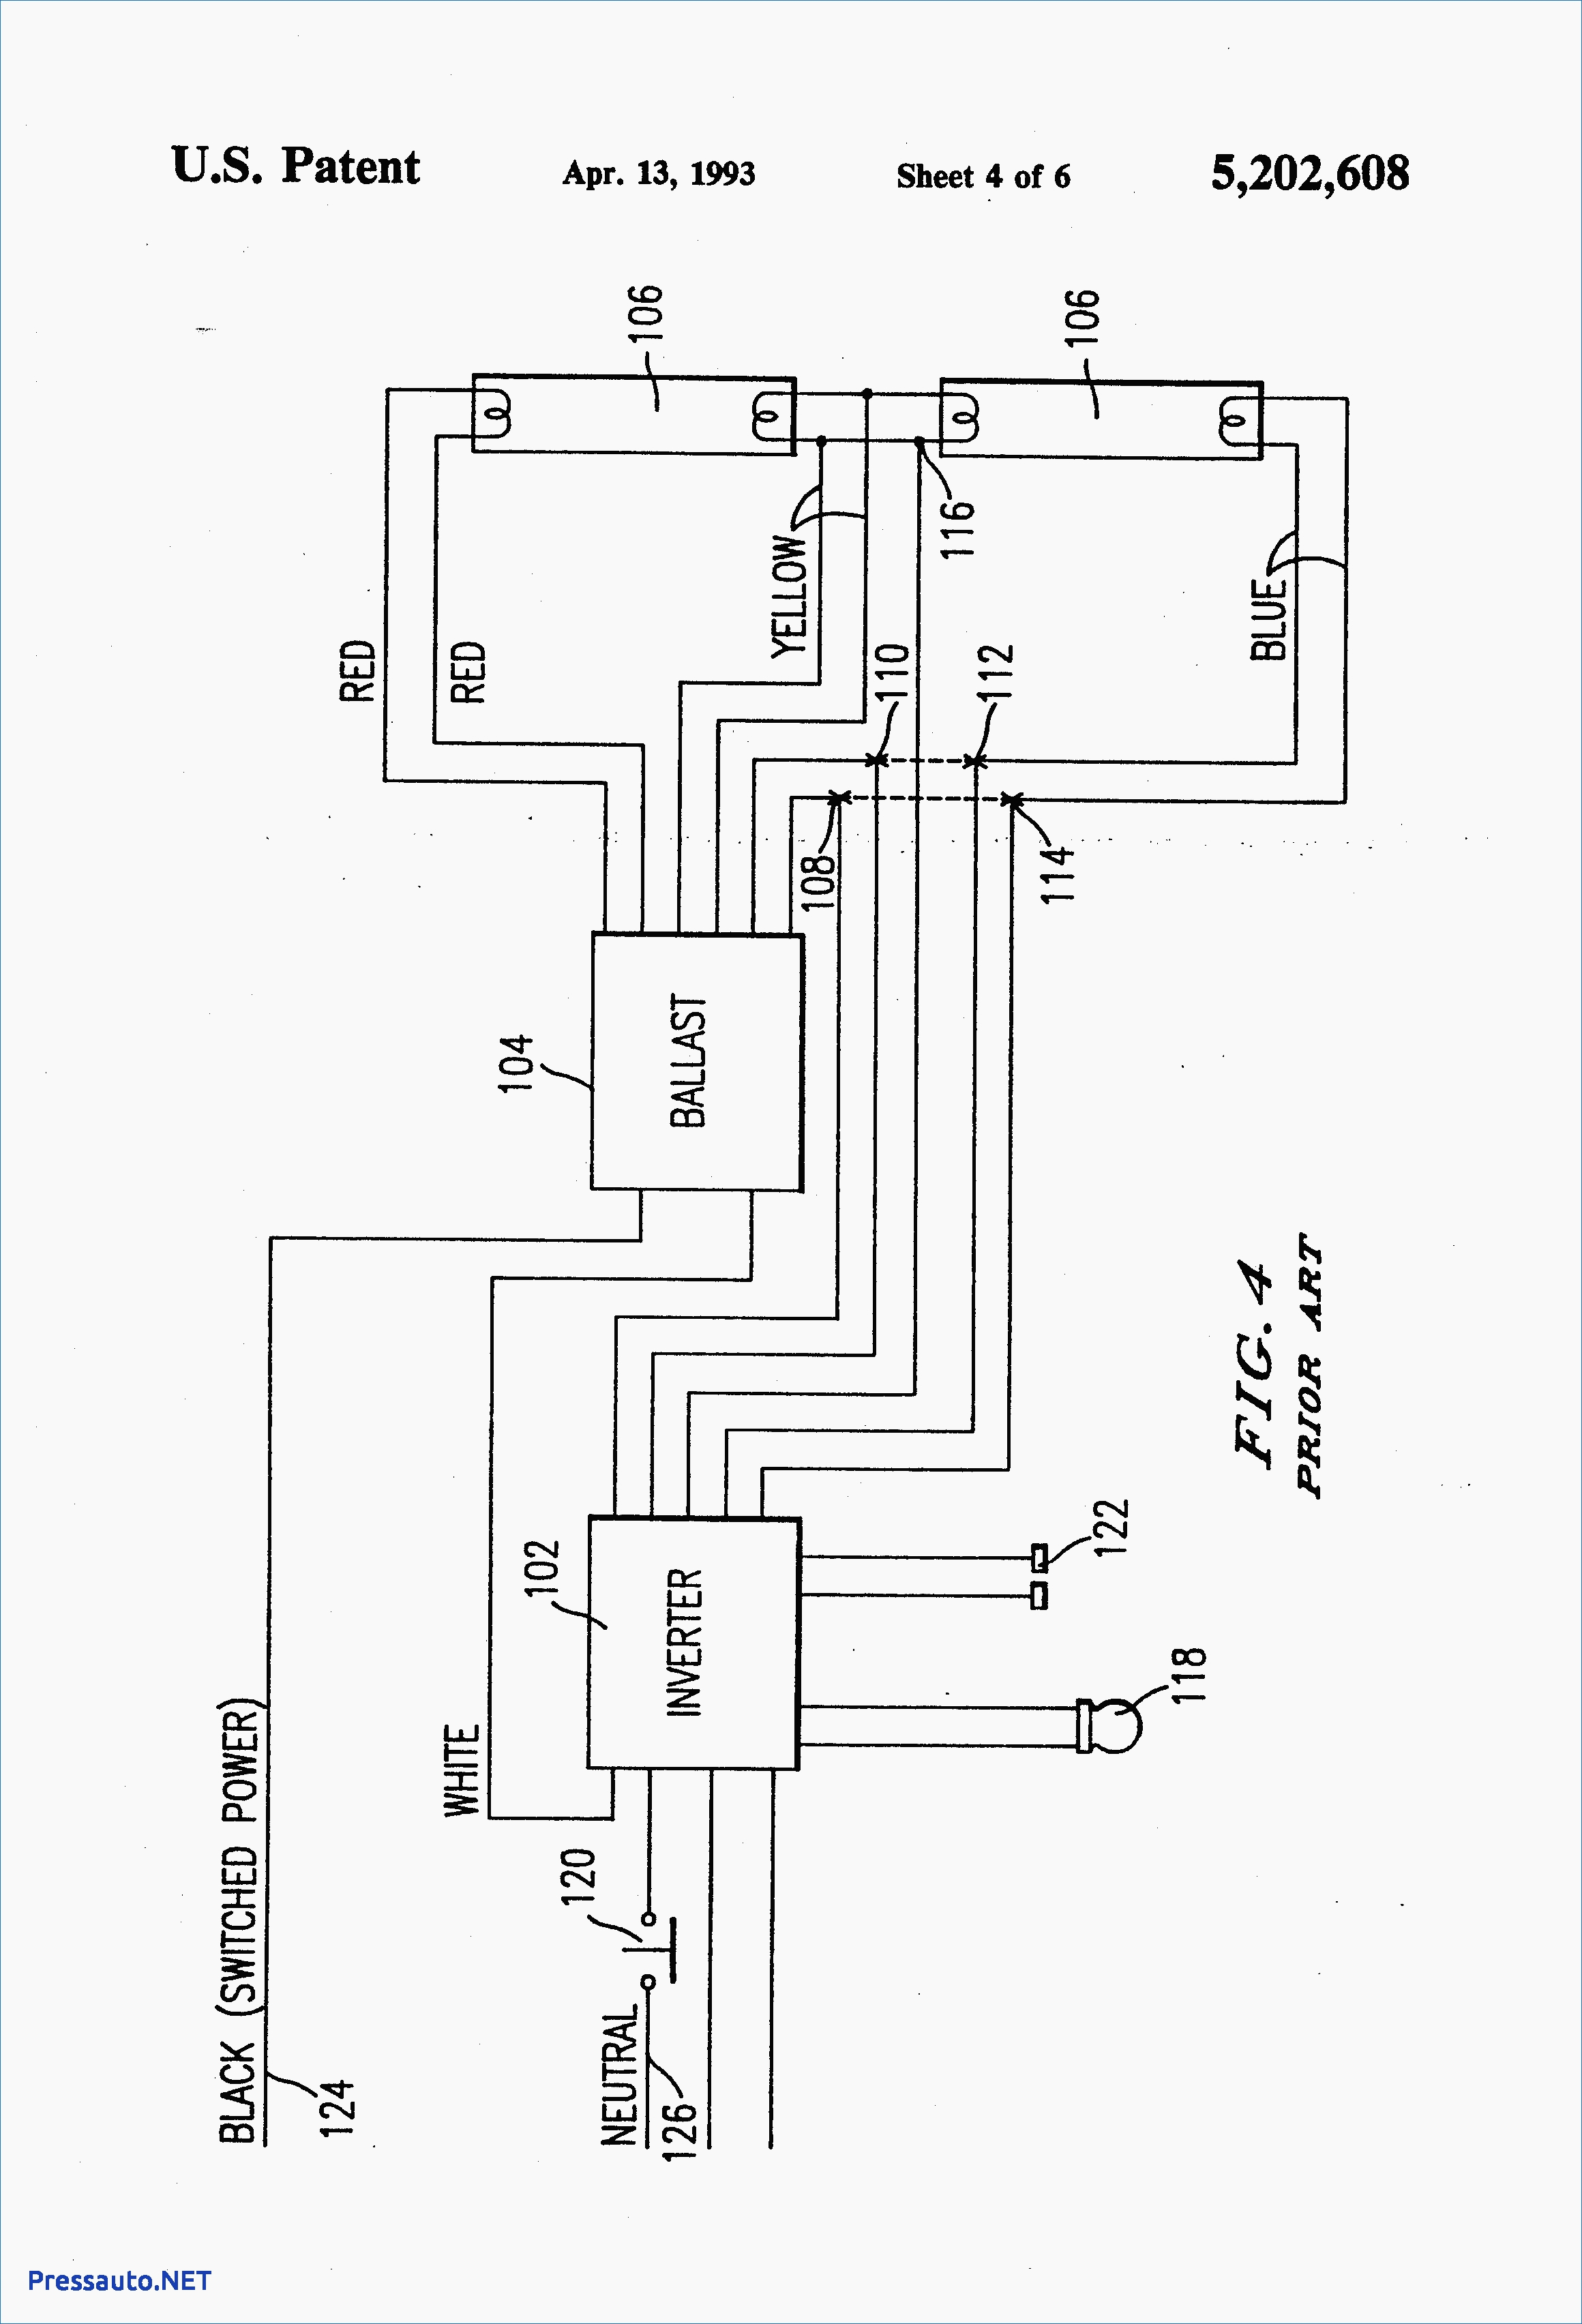 Intermatic Photocell Wiring Diagram Lighting Contactor Wiring Diagram With Cell Ge And L on Intermatic Pool Timer Wiring Diagram